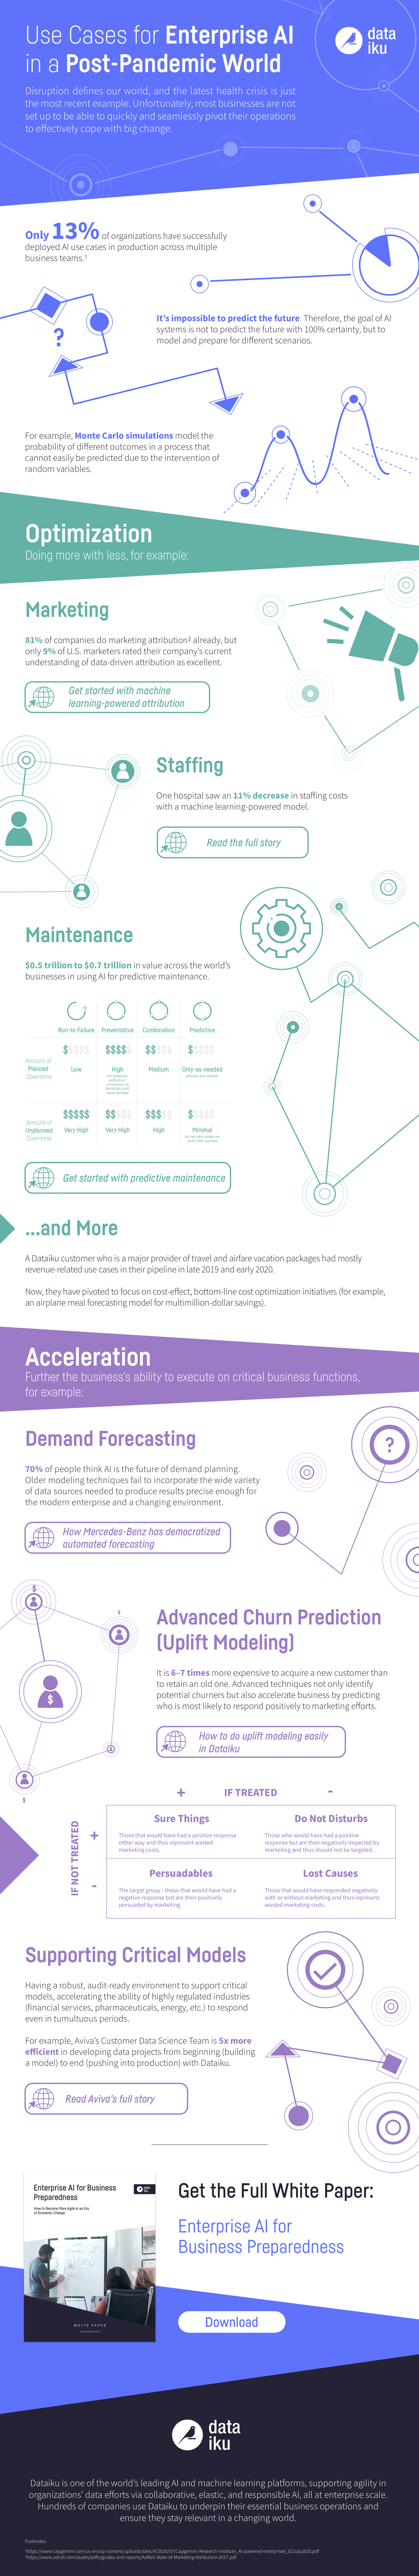 GM1339-DAC Infographic Use Cases for AI Post Pandemic